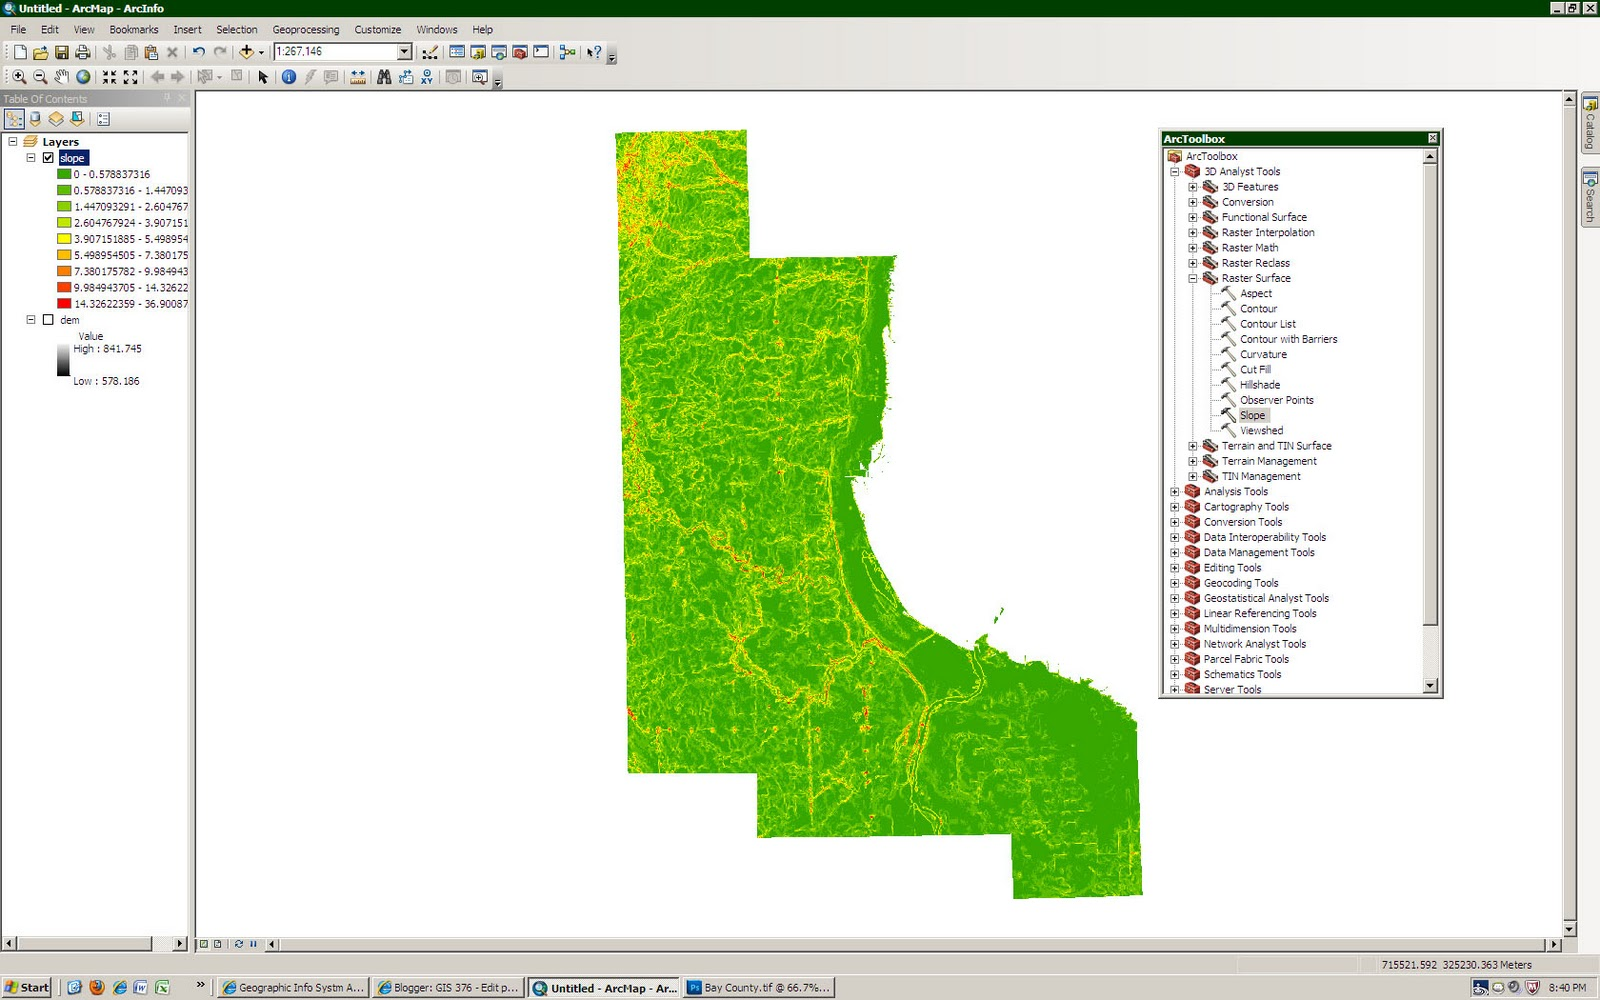 GIS 376: Terrain Analysis - Assignment Section 1